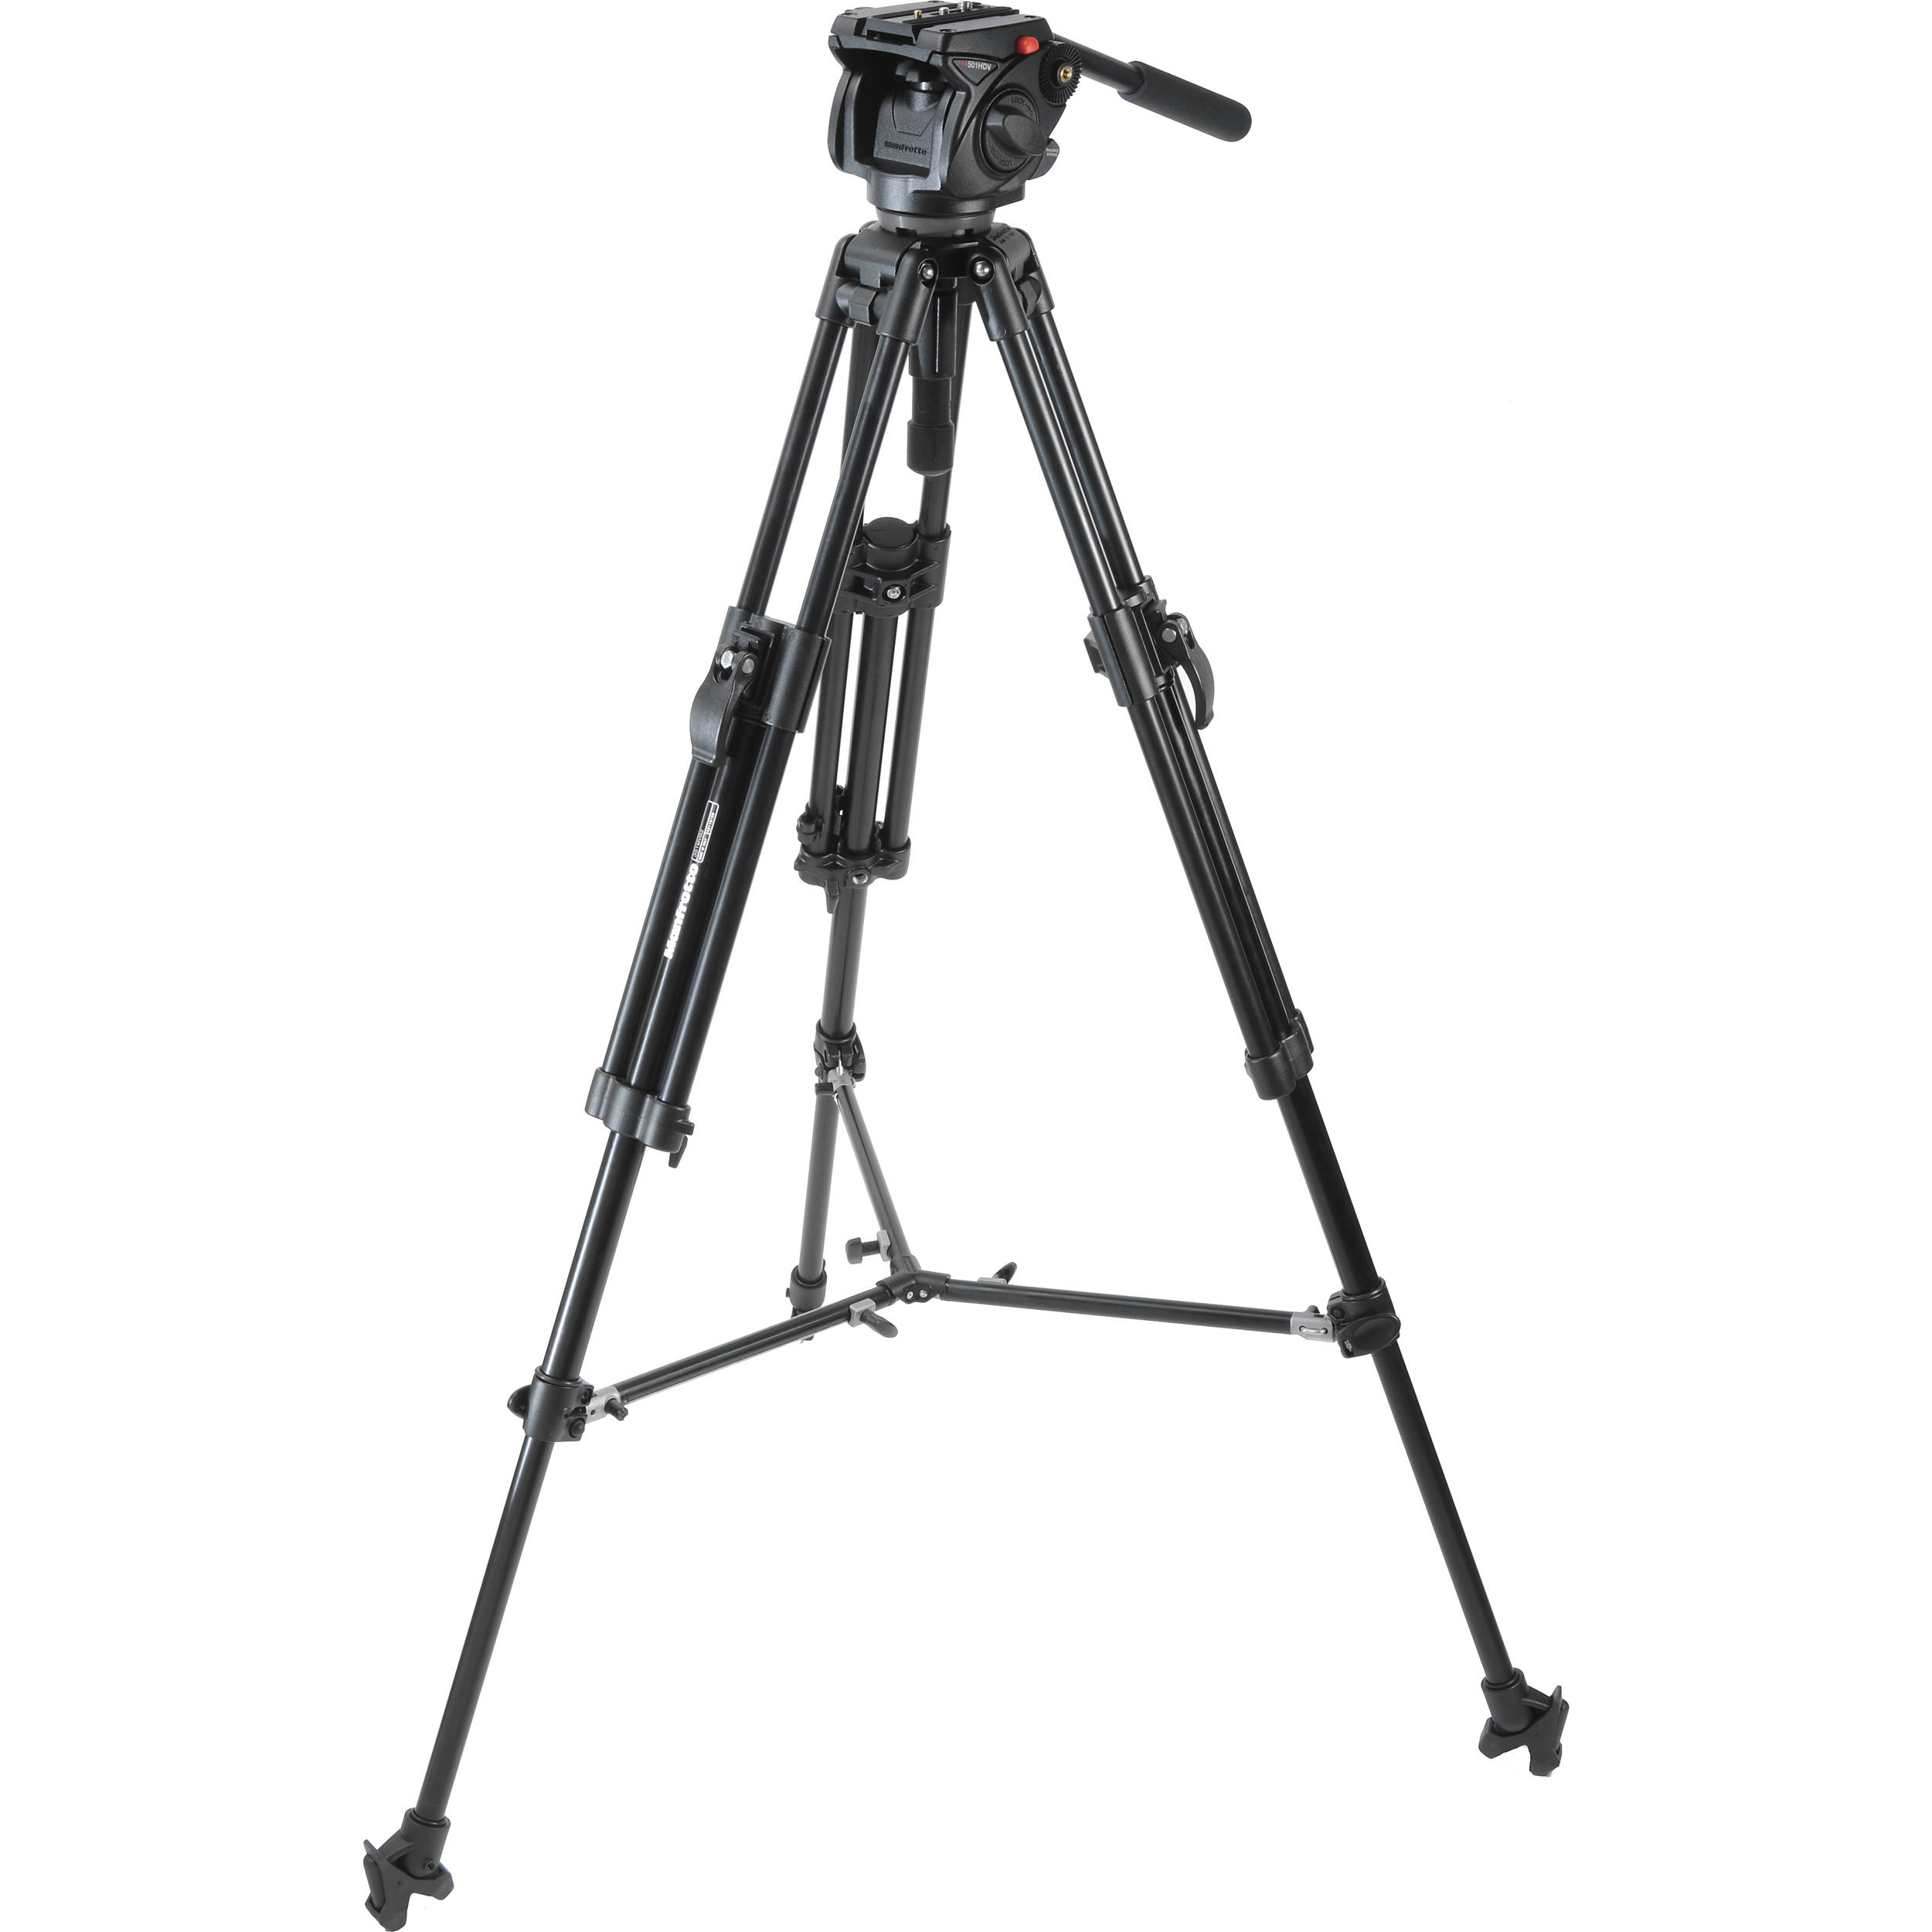 Lingering likewise Manfrotto 501HDV 351MVB2K 501HDV 351MVB2K 1 Stage Tripod System together with How To Diagnose And Repair Rack And Pinion Bushings likewise Color Doctor Gear likewise Potty Training Tips Necklace Tutorial. on track your box